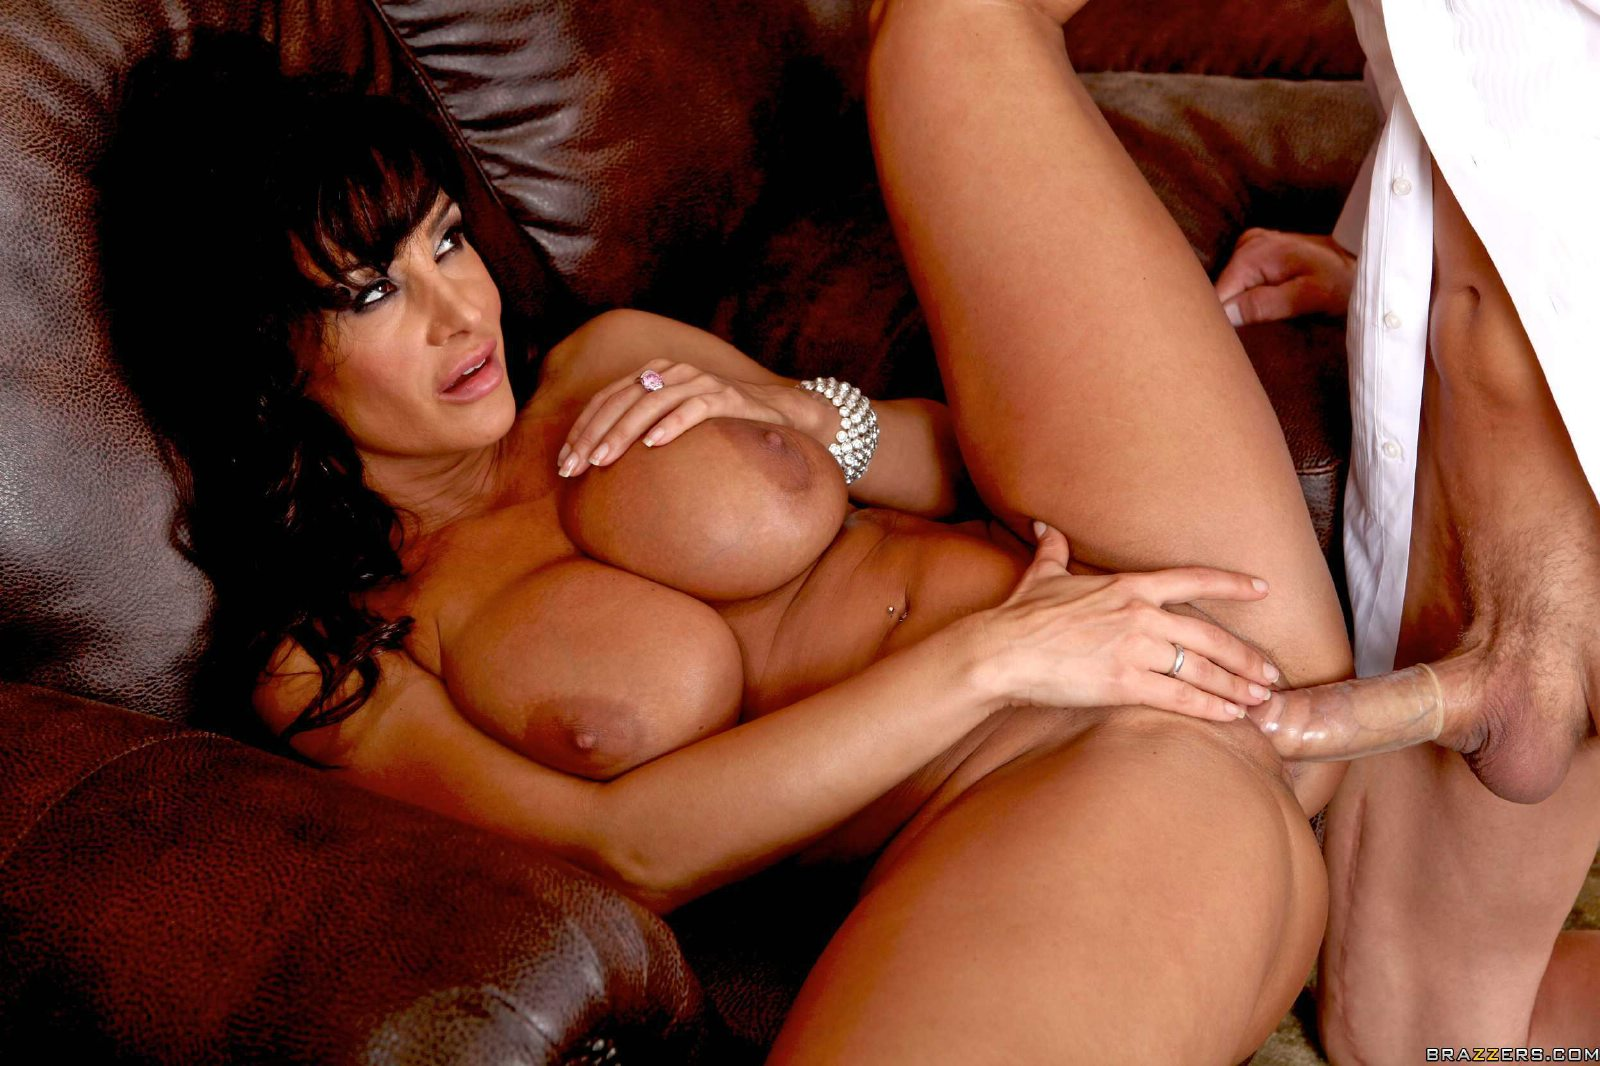 Lisa ann threesome brazzer congratulate